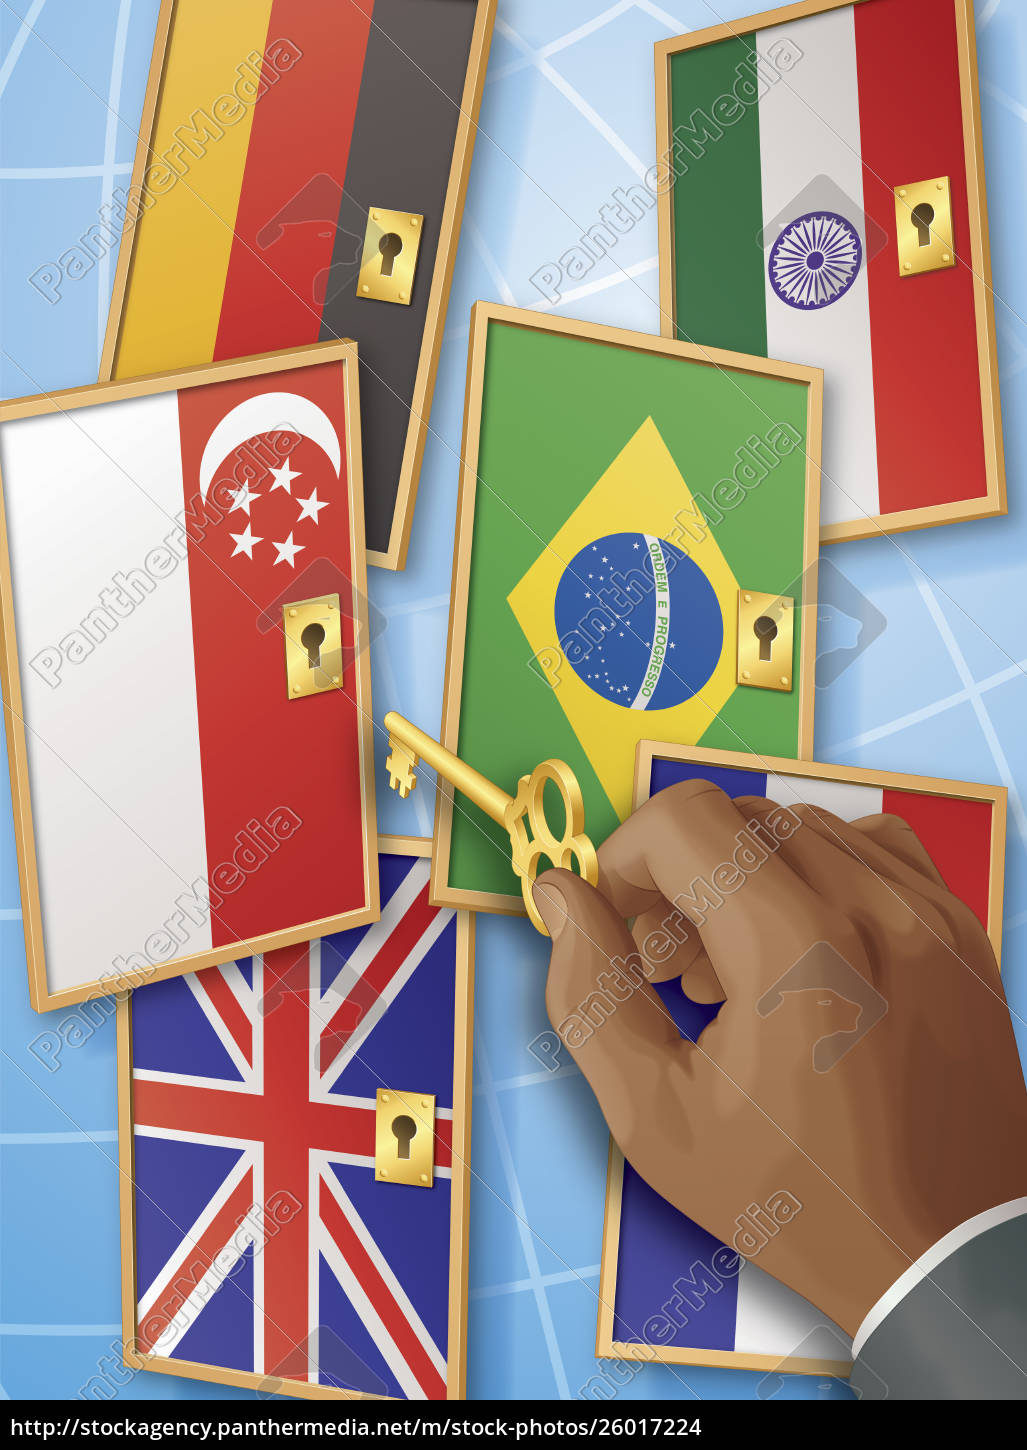 hand, with, key, unlocking, international, flag - 26017224